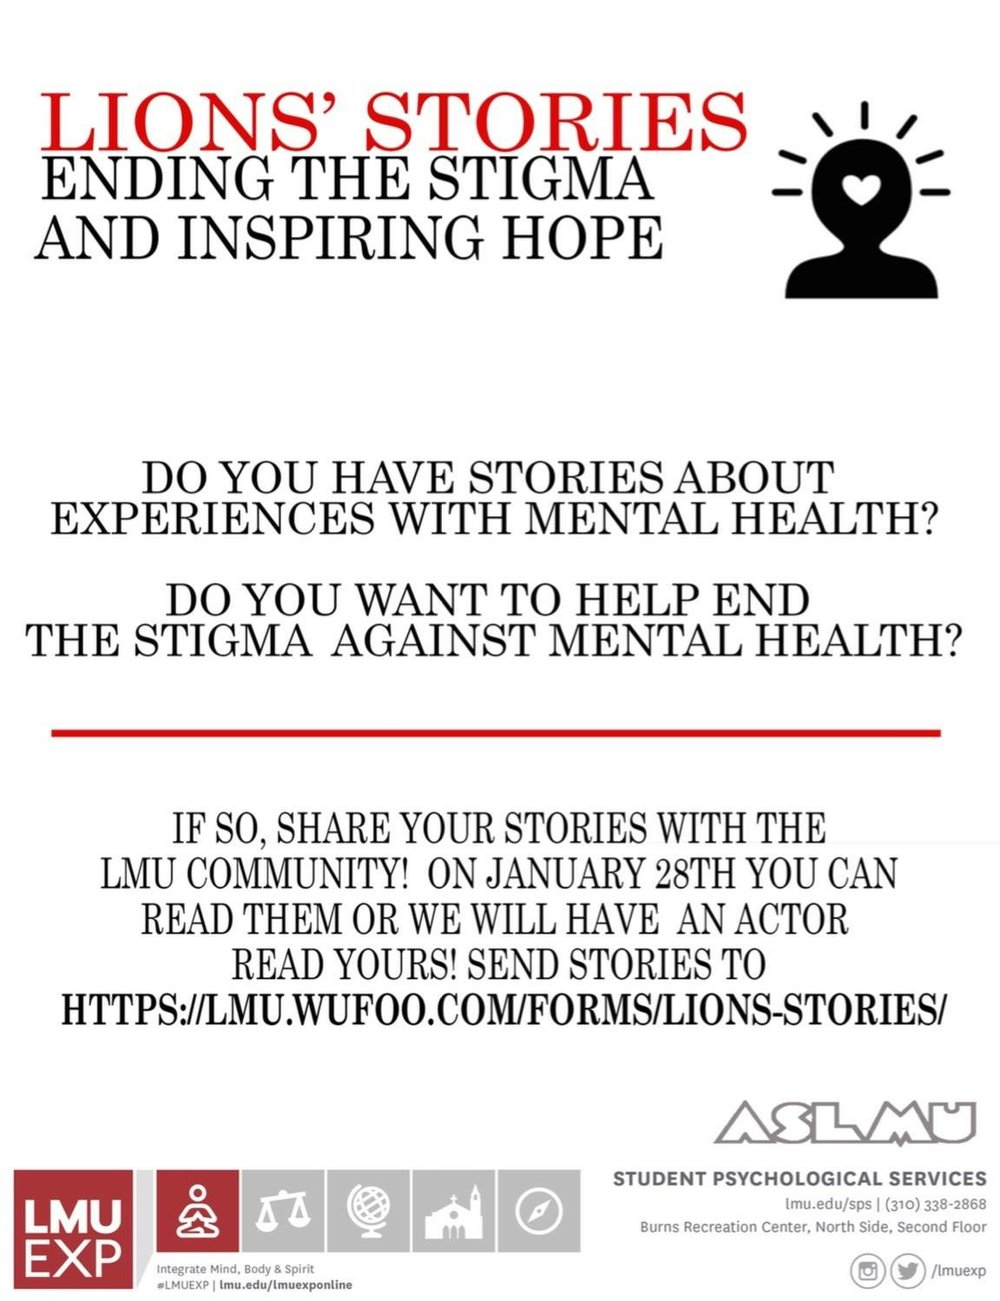 Hey Lions!! Your ASLMU Senator Katie Porter is excited to introduce to you, Lion Stories! To end the stigma on mental illness, share your experiences with mental health at the link on the poster above. In January you'll have the chance to read it or have an actor read it.